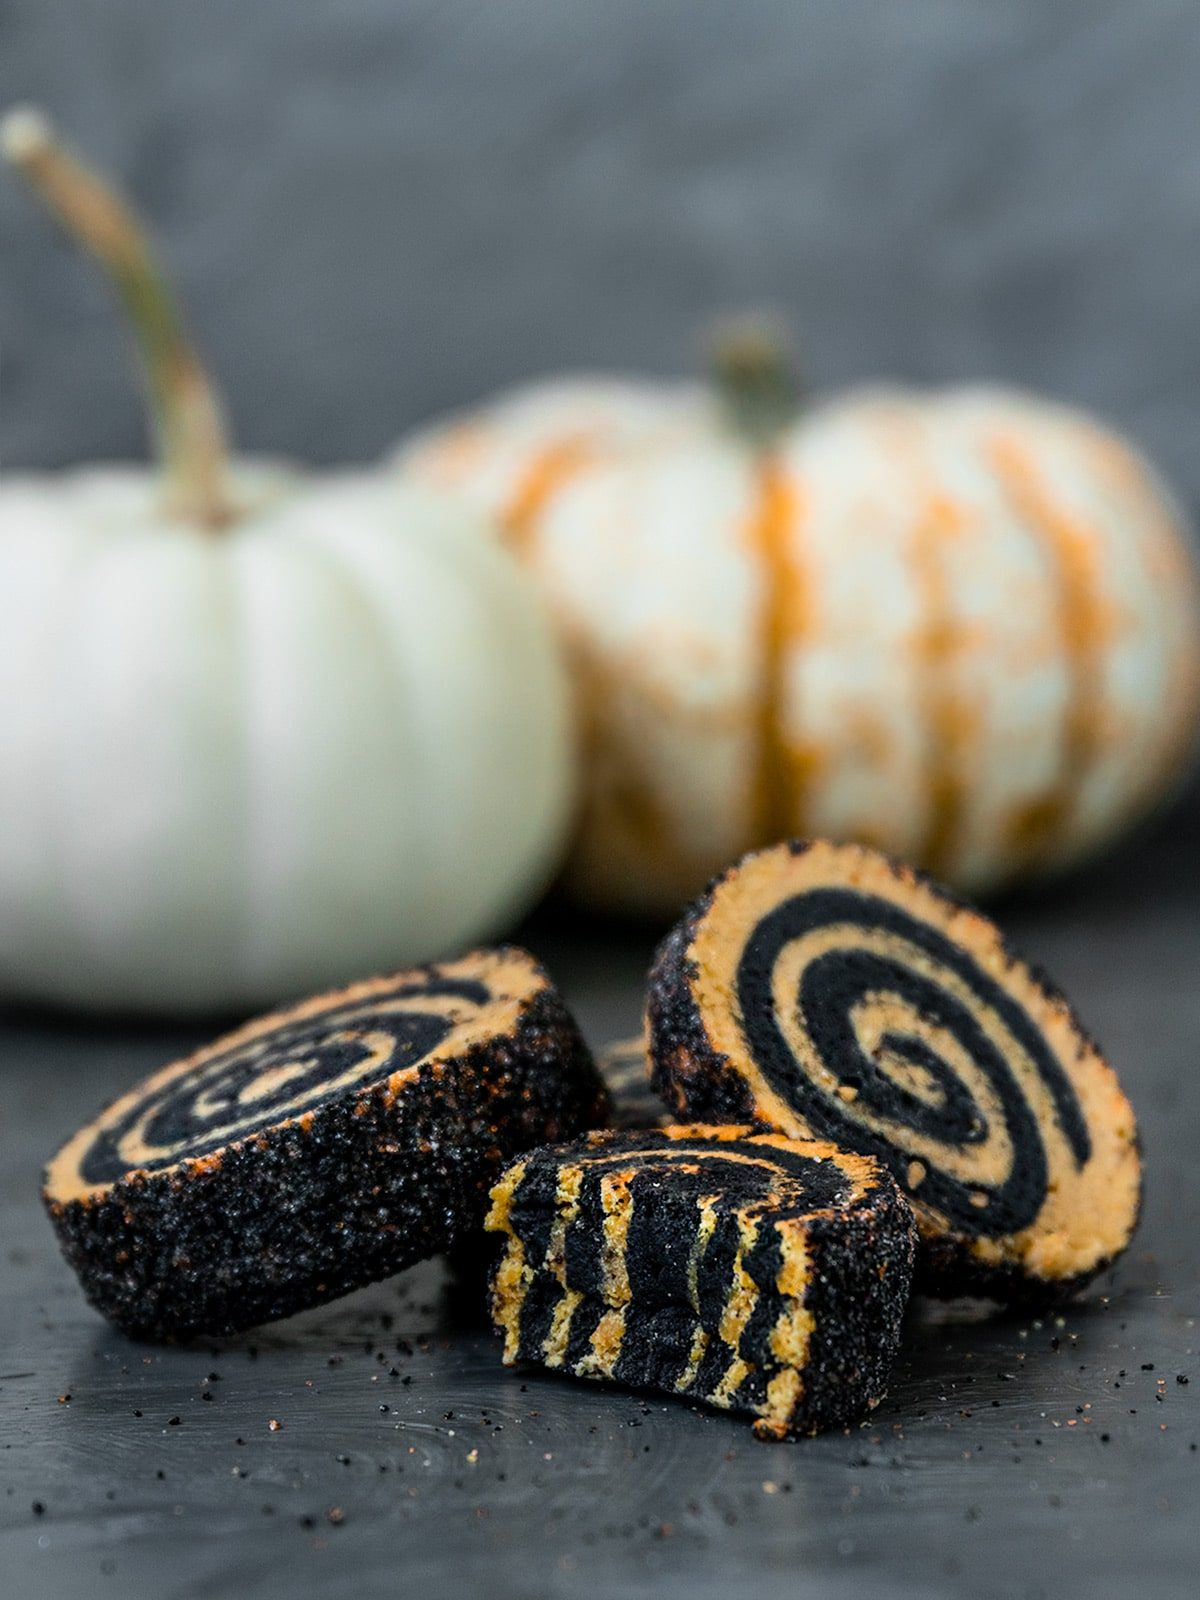 three pinwheel cookies one cut in half to show layers of black and orange swirls inside